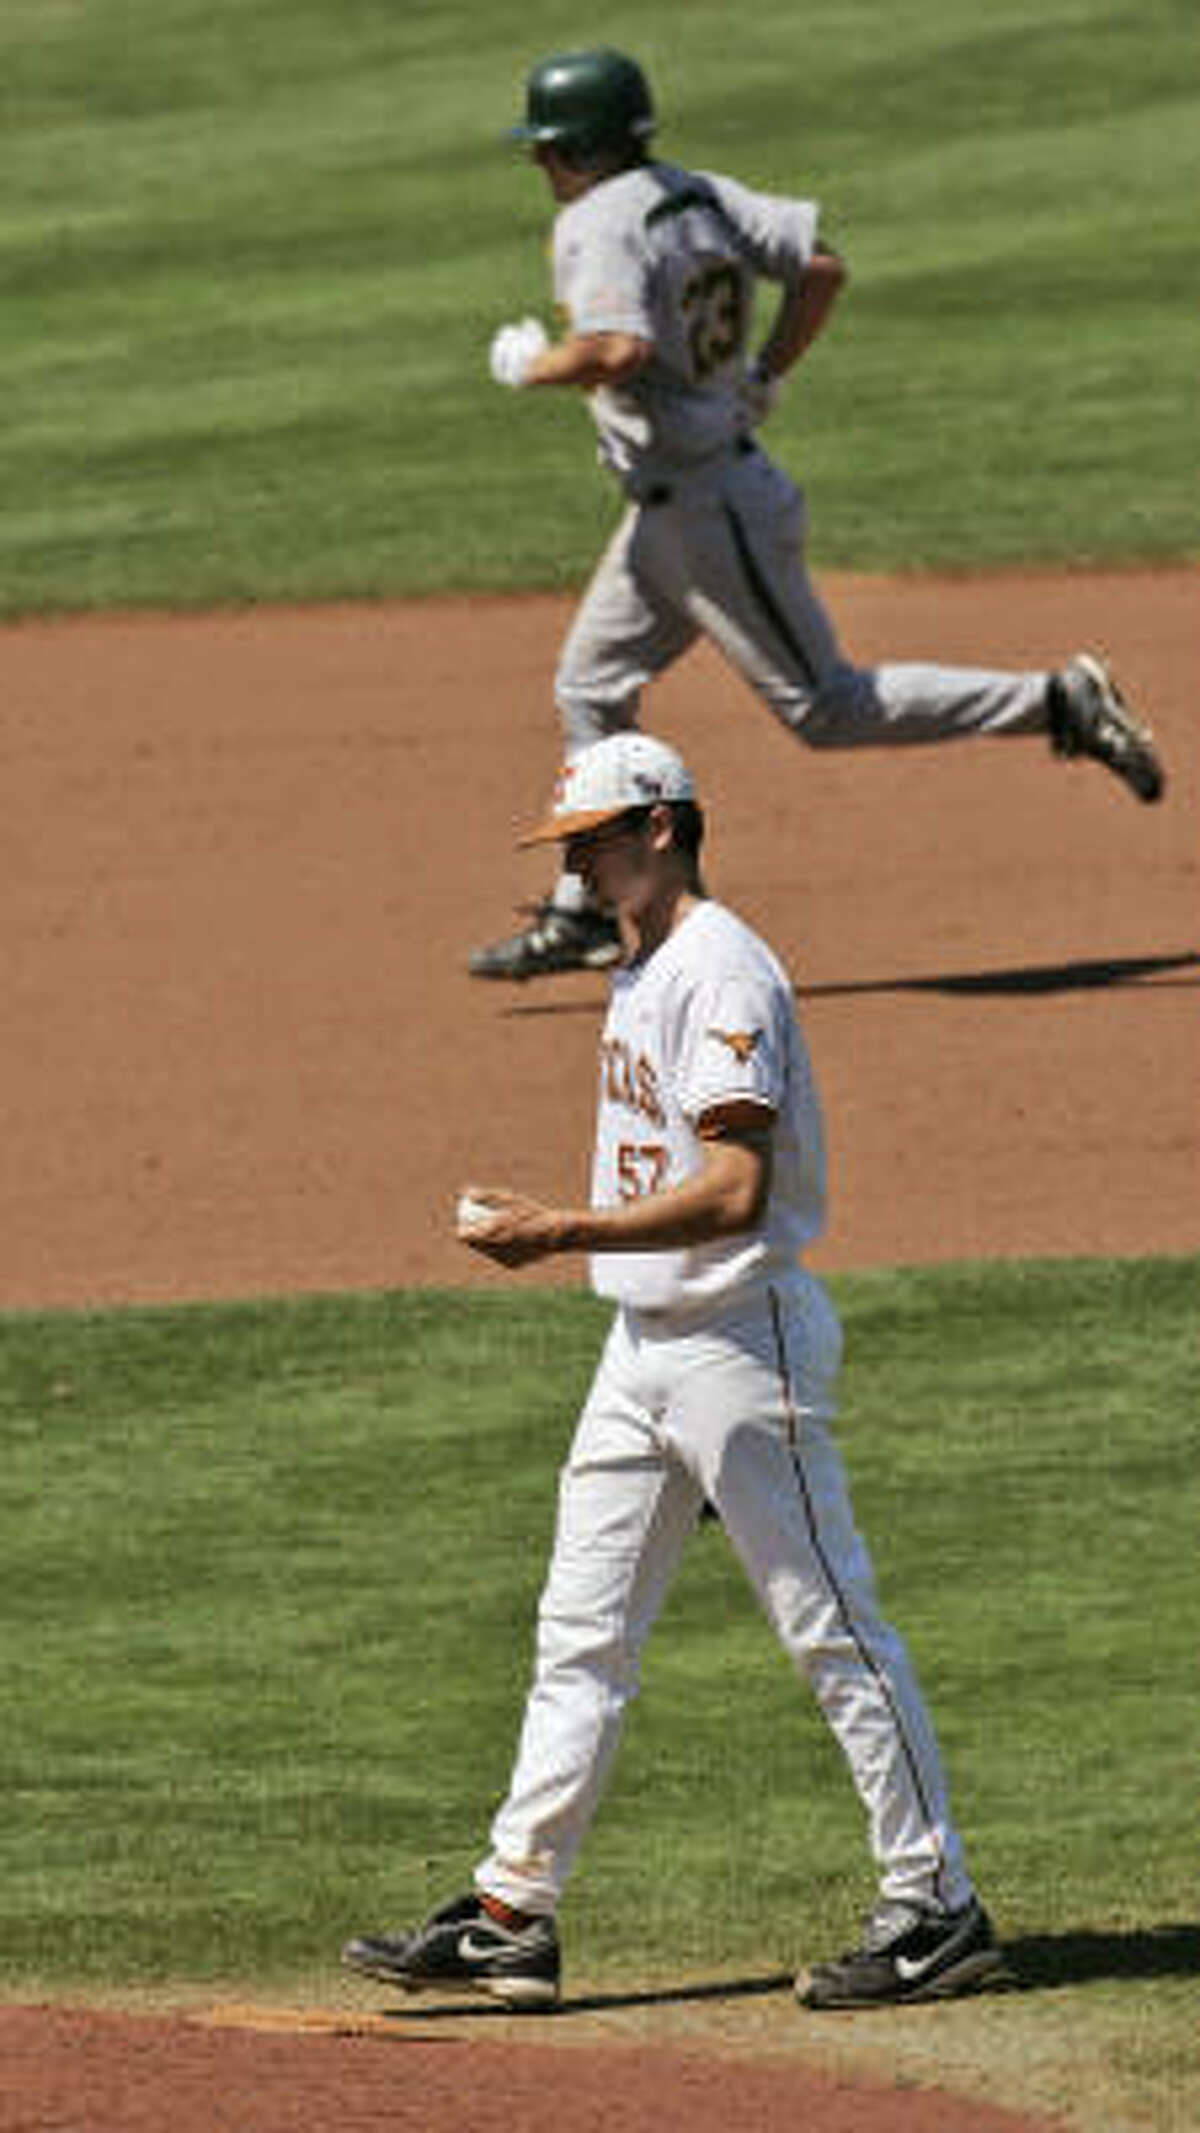 Texas pitcher Andrew McKirahan walks back to the mound as Baylor's Dan Evatt rounds the bases behind him following a ninth-inning home run. The Bears beat the Longhorns 14-9 in the Big 12 tournament opener in Oklahoma City.